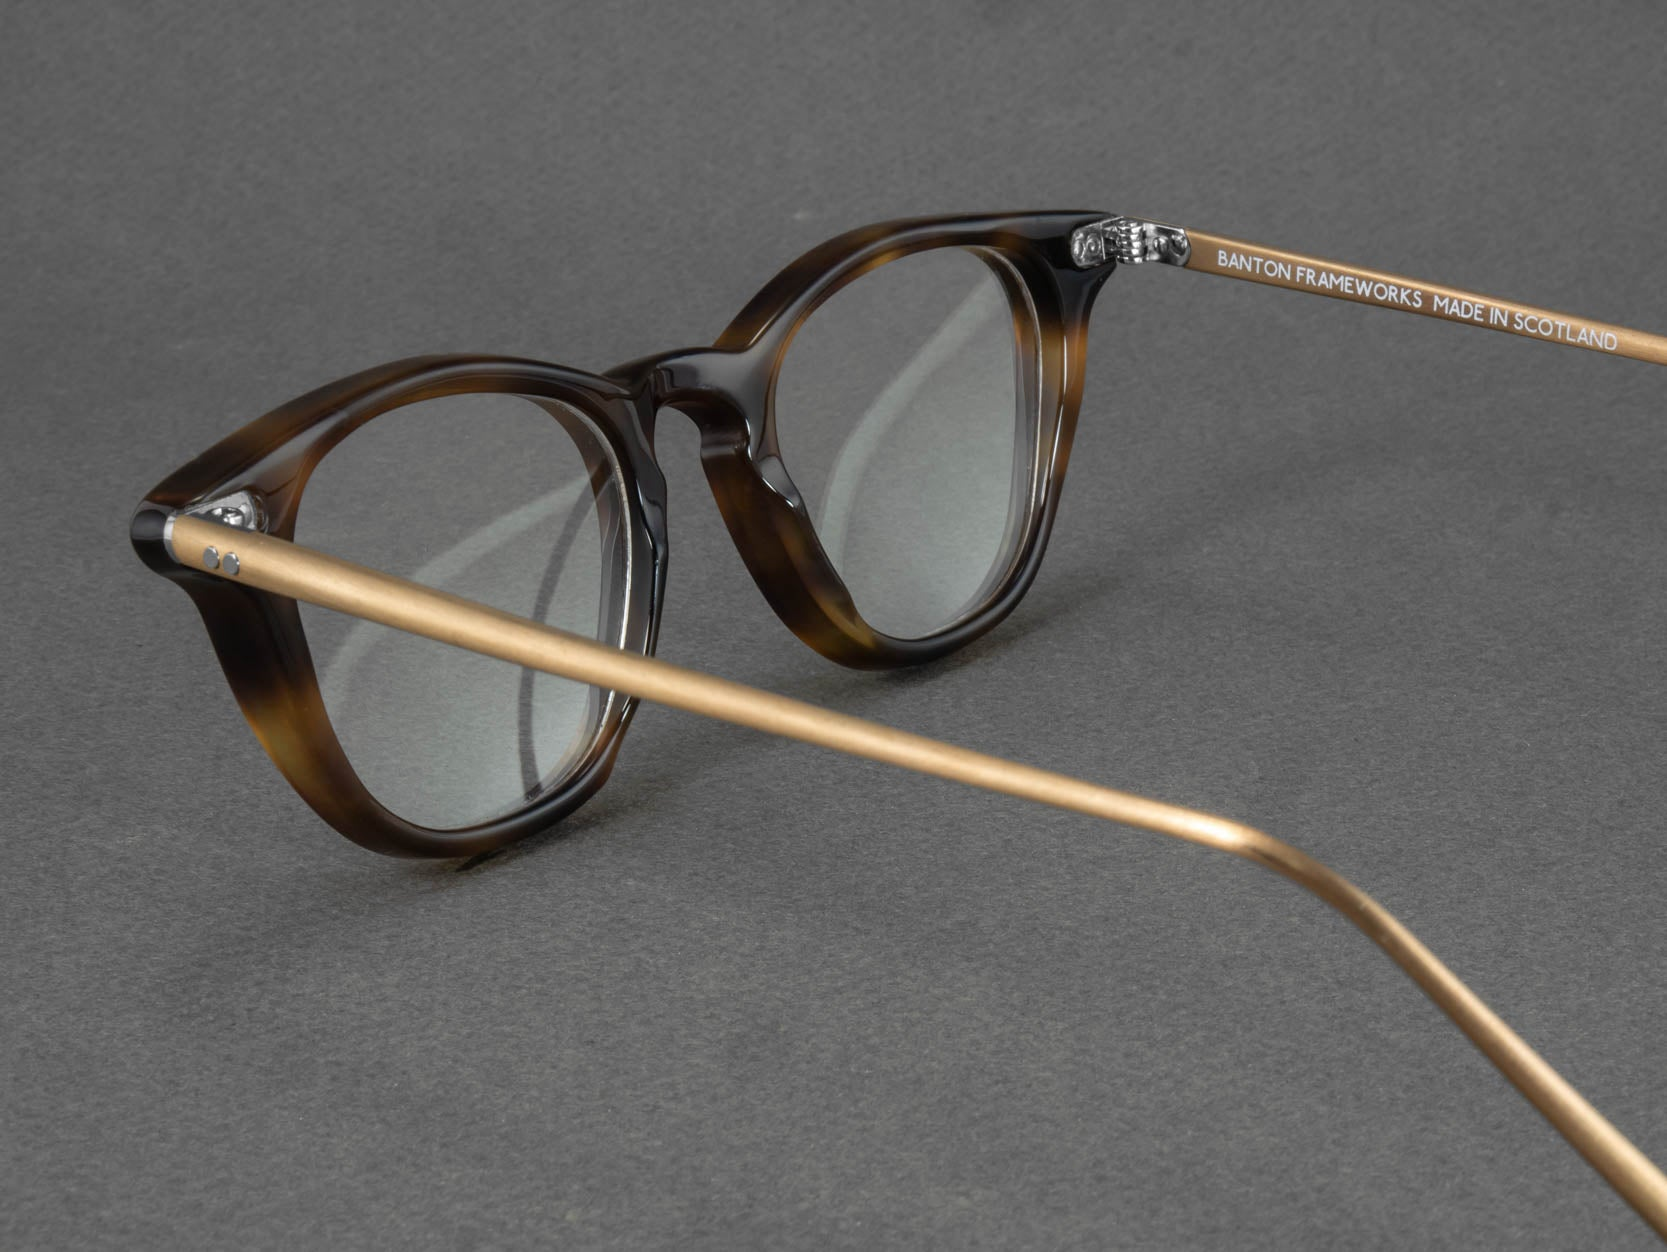 tortoise shell glasses aerial view